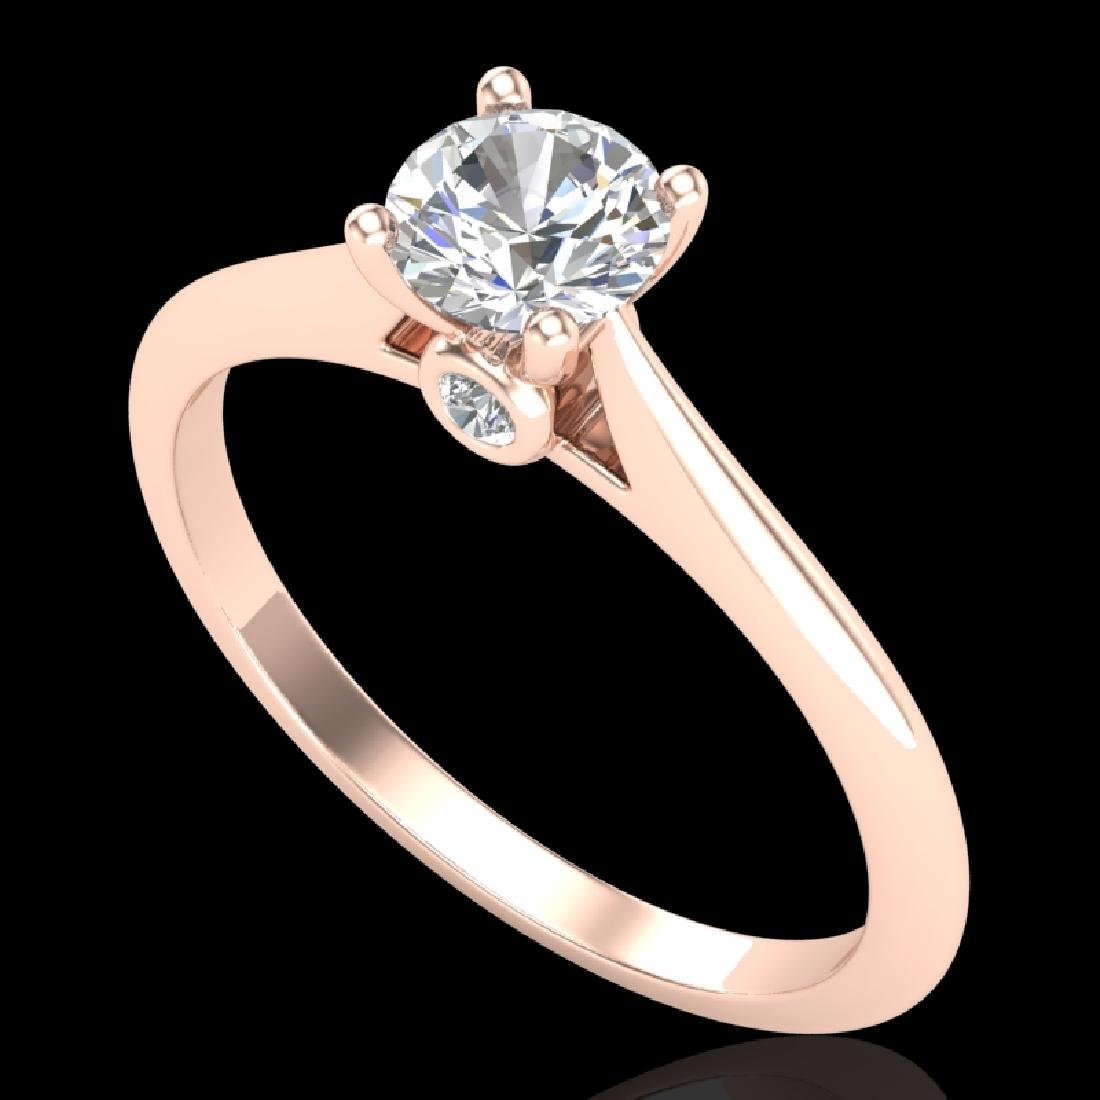 0.56 CTW VS/SI Diamond Solitaire Art Deco Ring 18K Rose